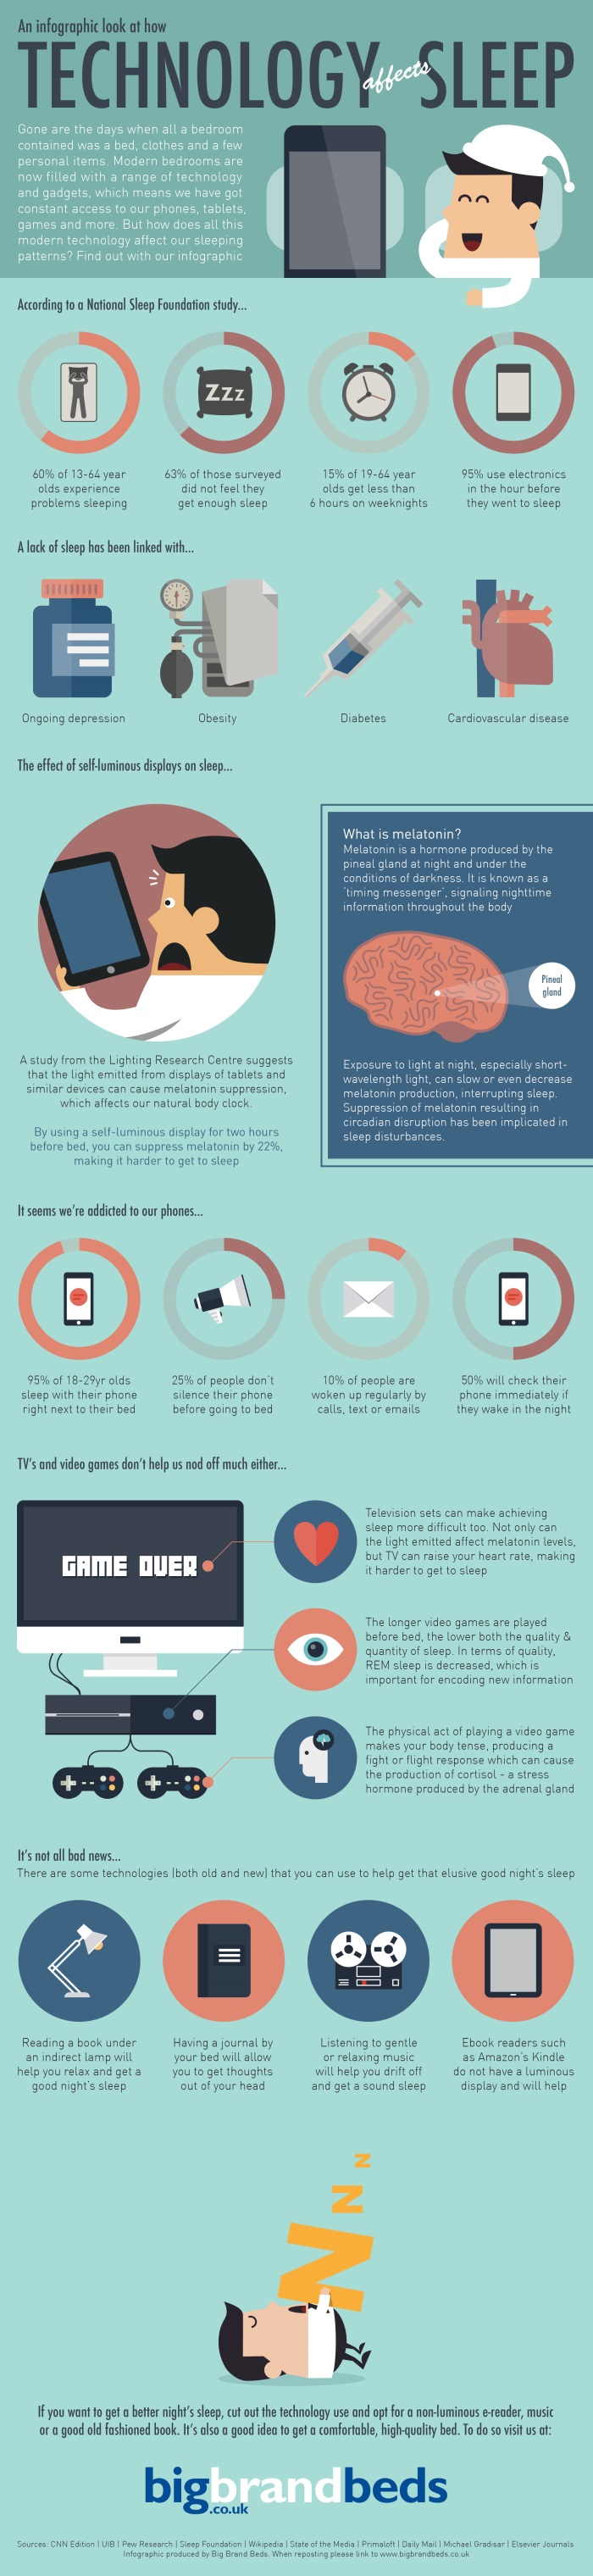 how-technology-affects-sleep